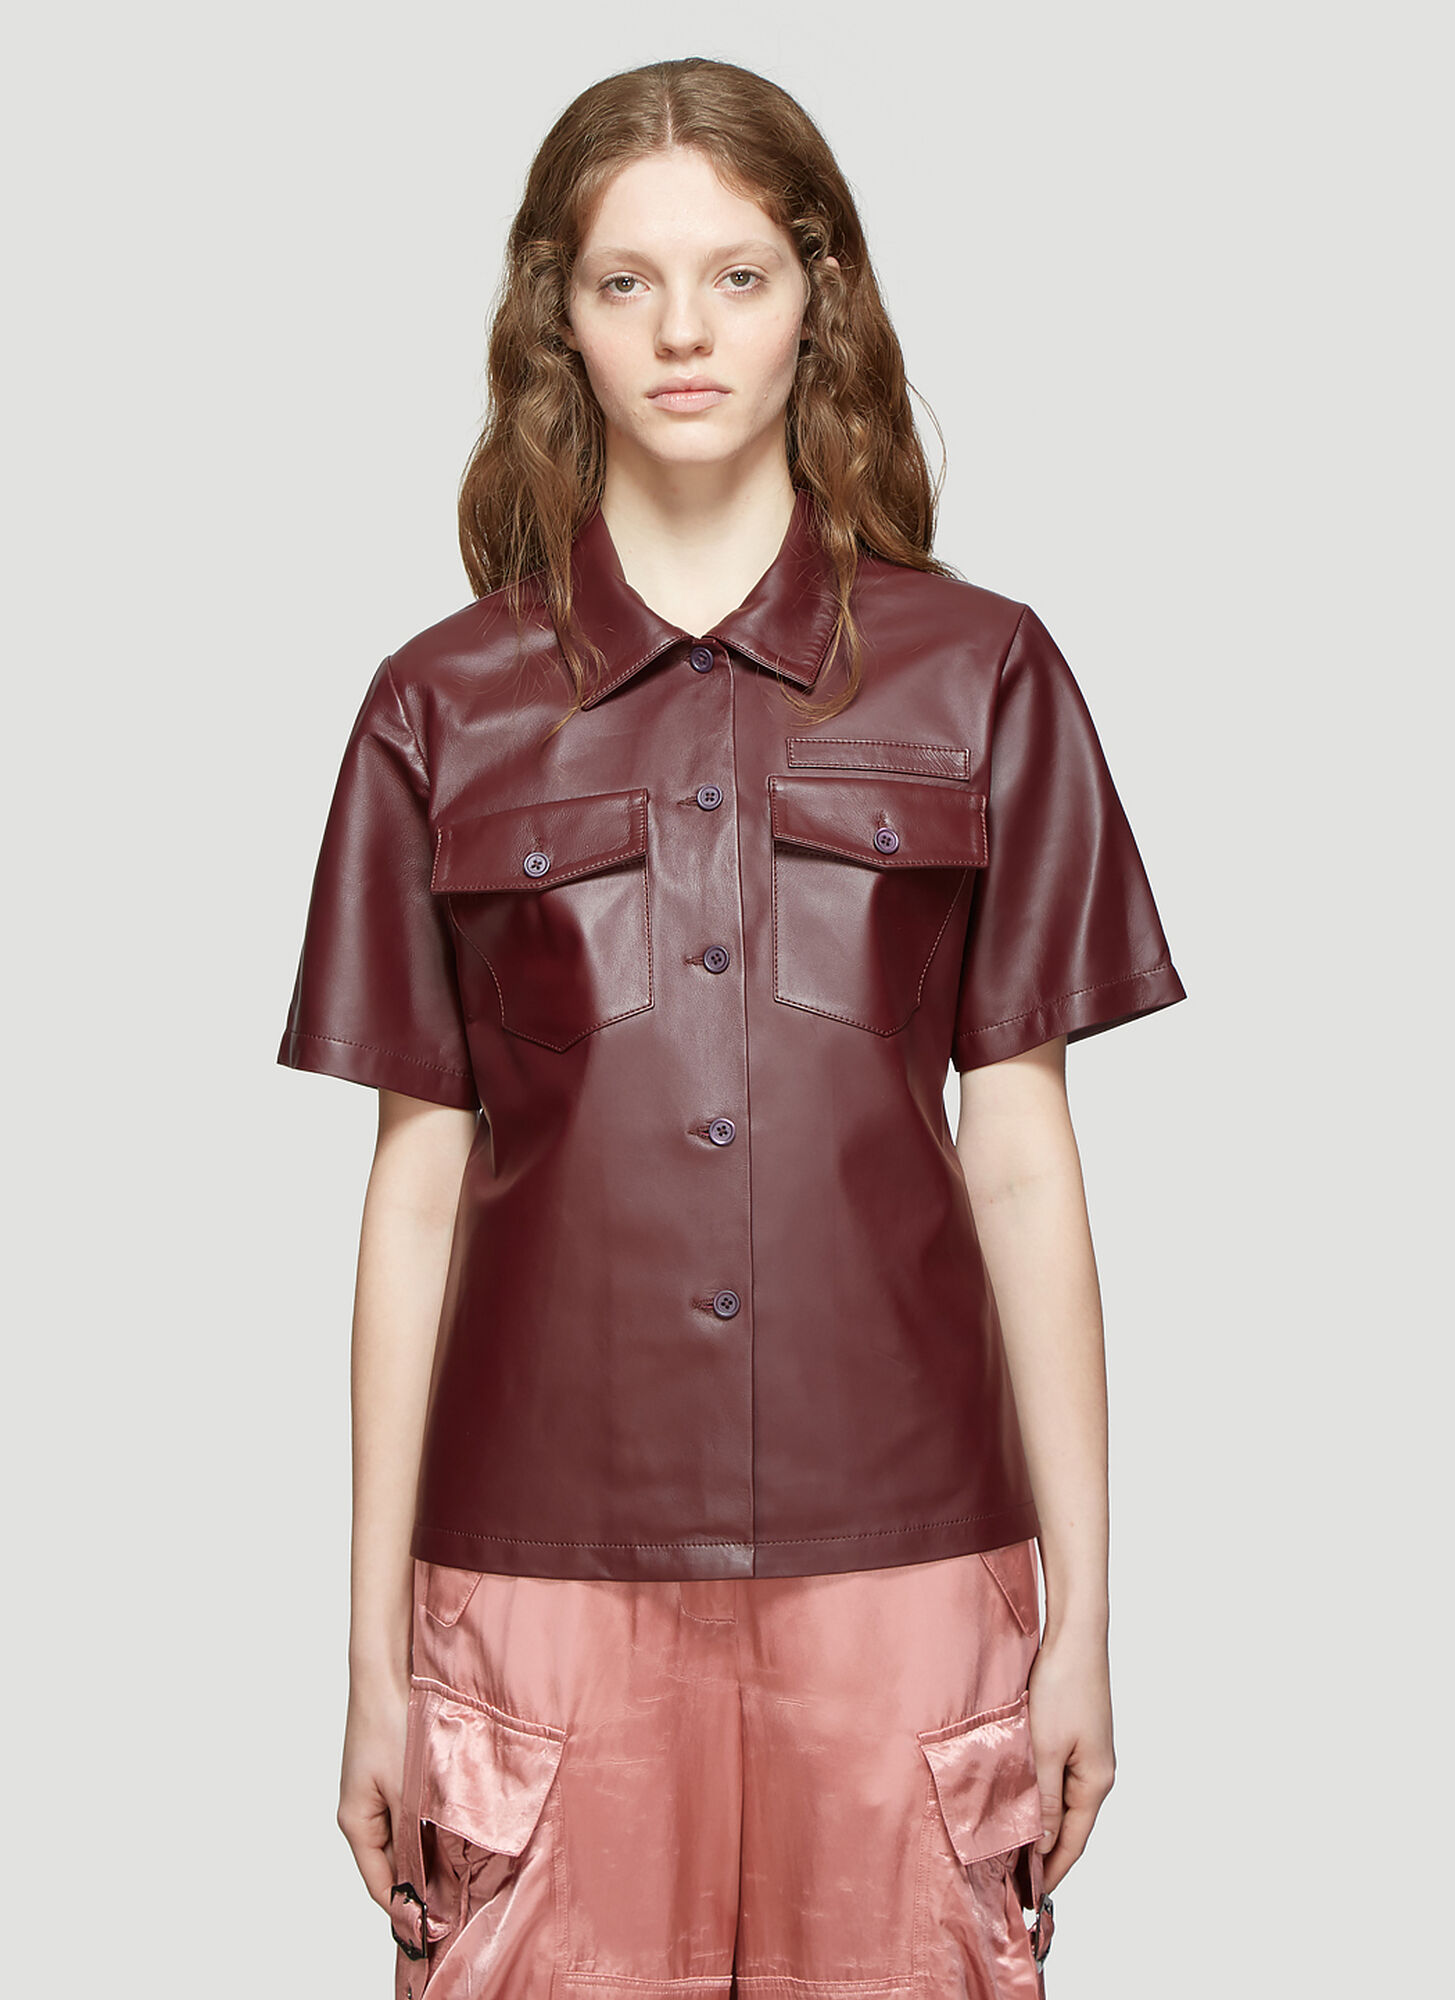 Photo of Sies Marjan Nico Leather Pocket Button Shirt in Burgundy - Sies Marjan Shirts